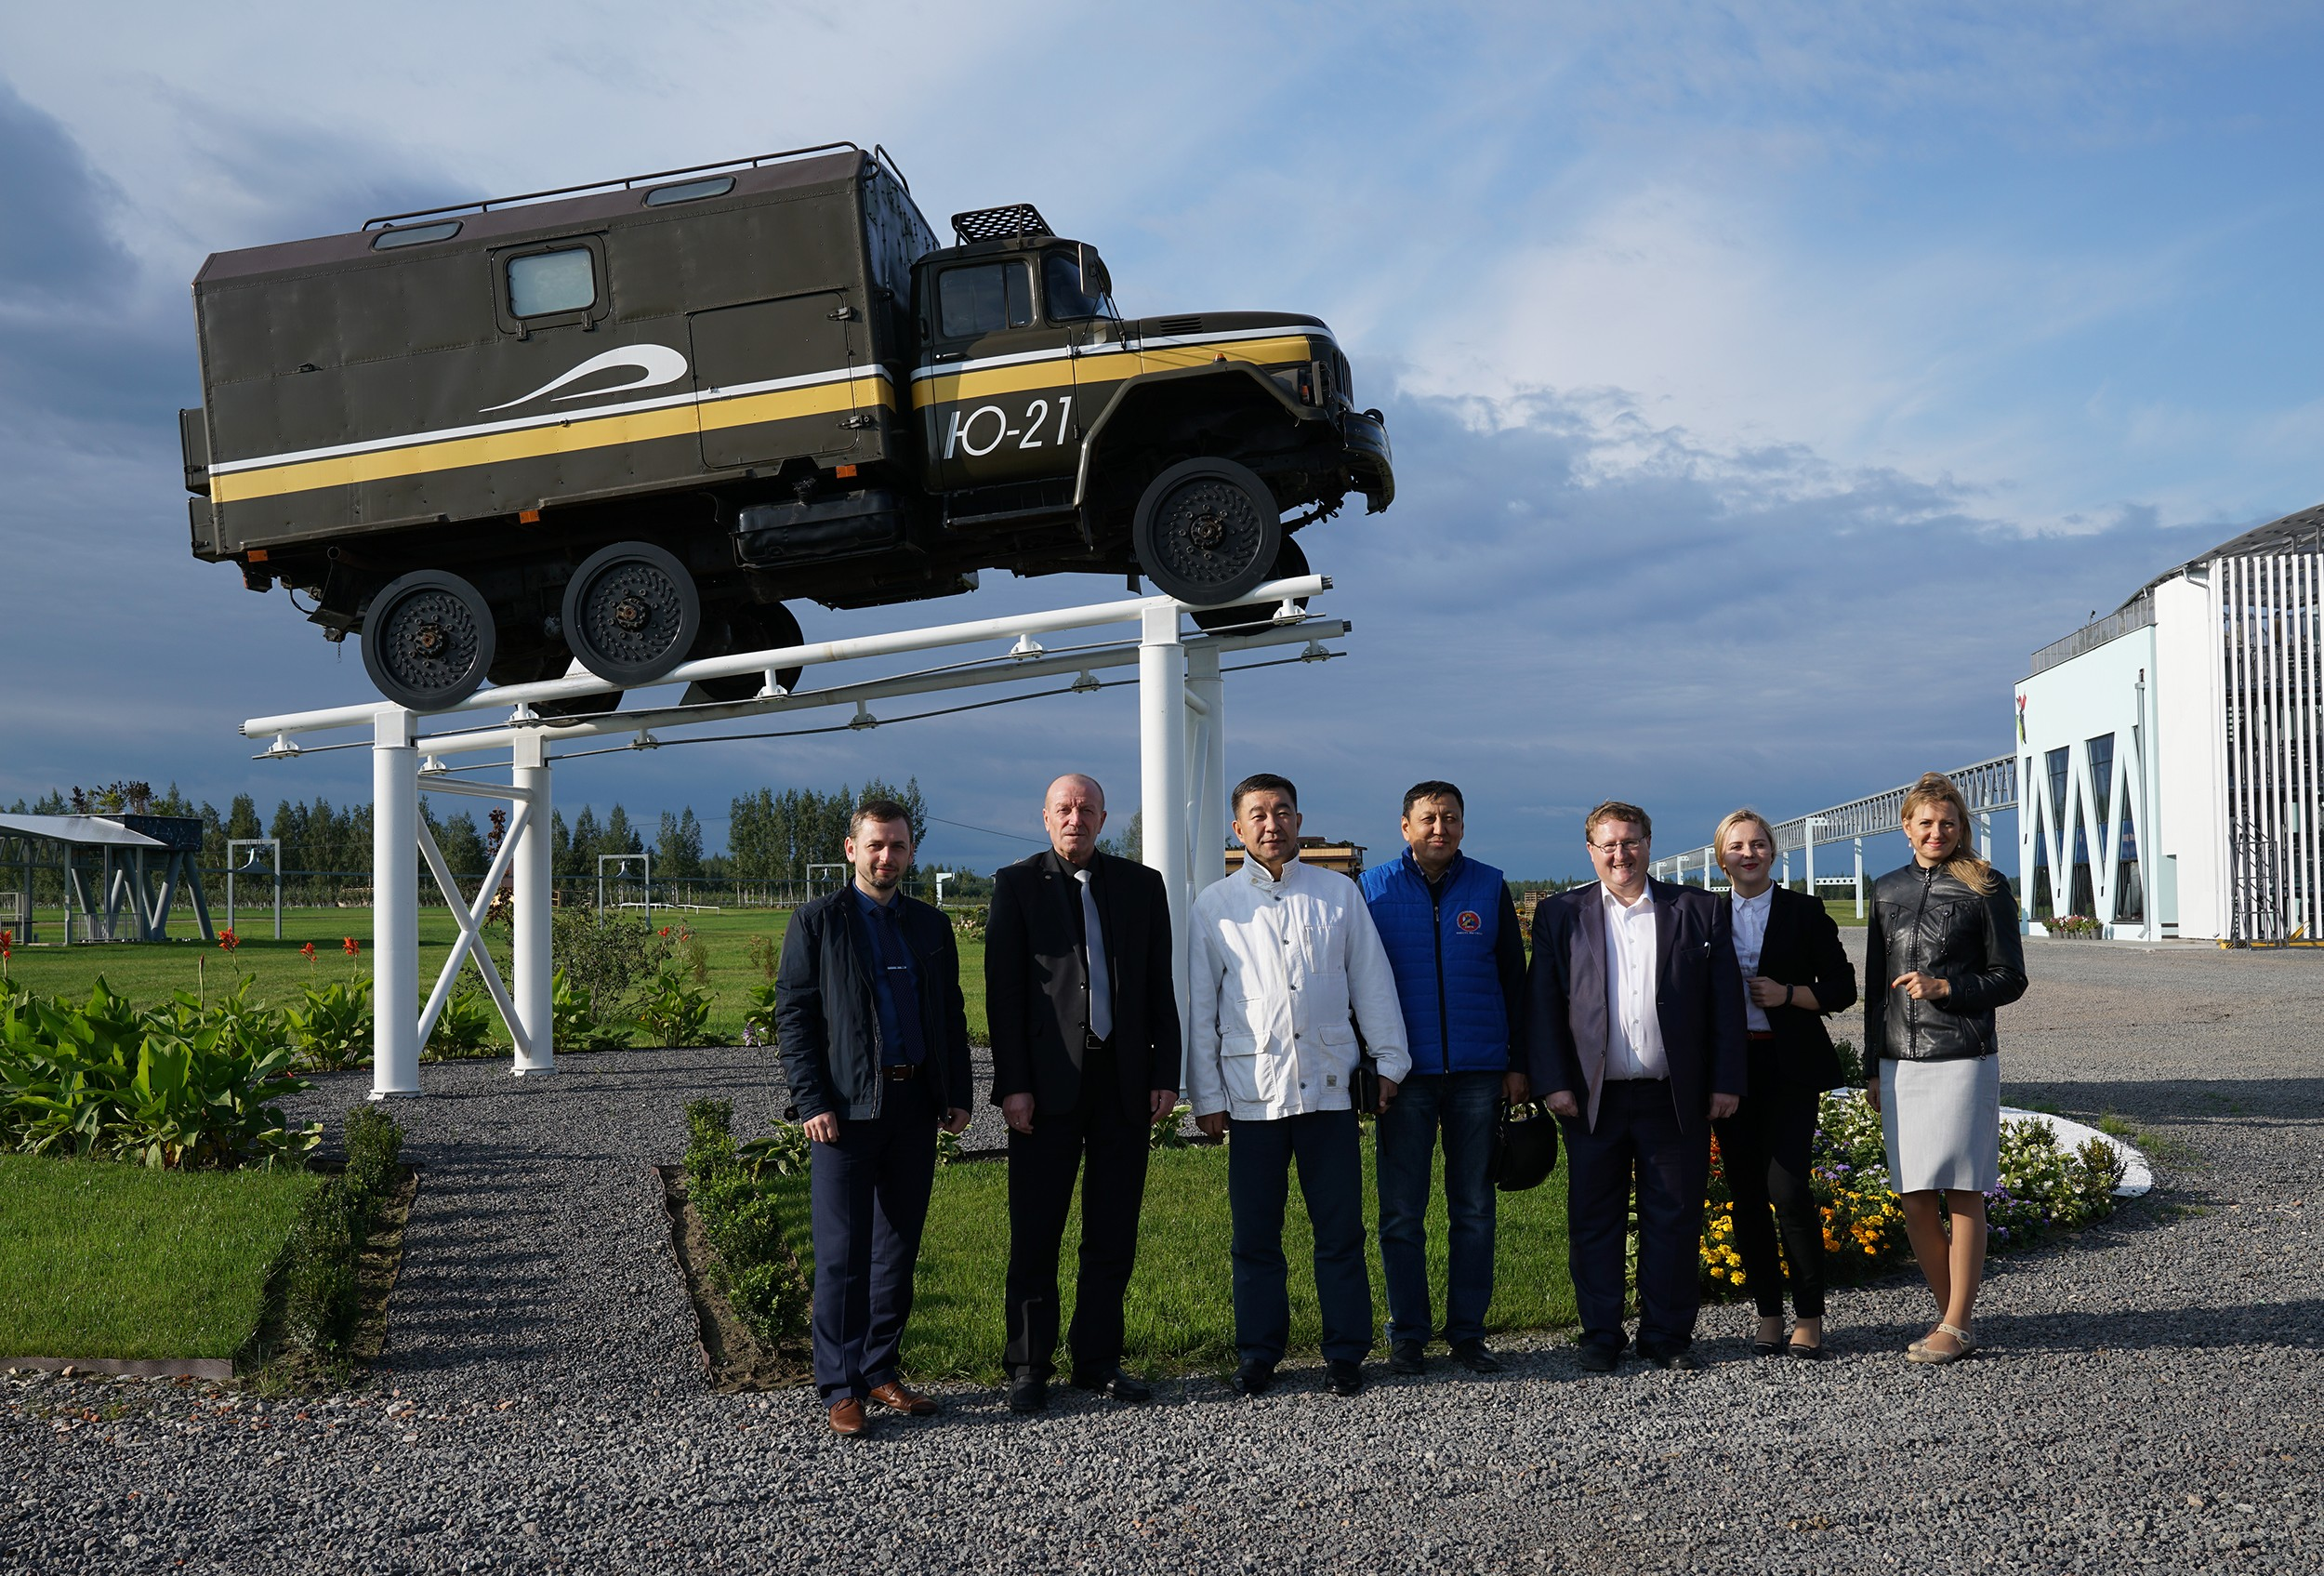 SkyWay: Transport Solutions for Kyrgyzstan